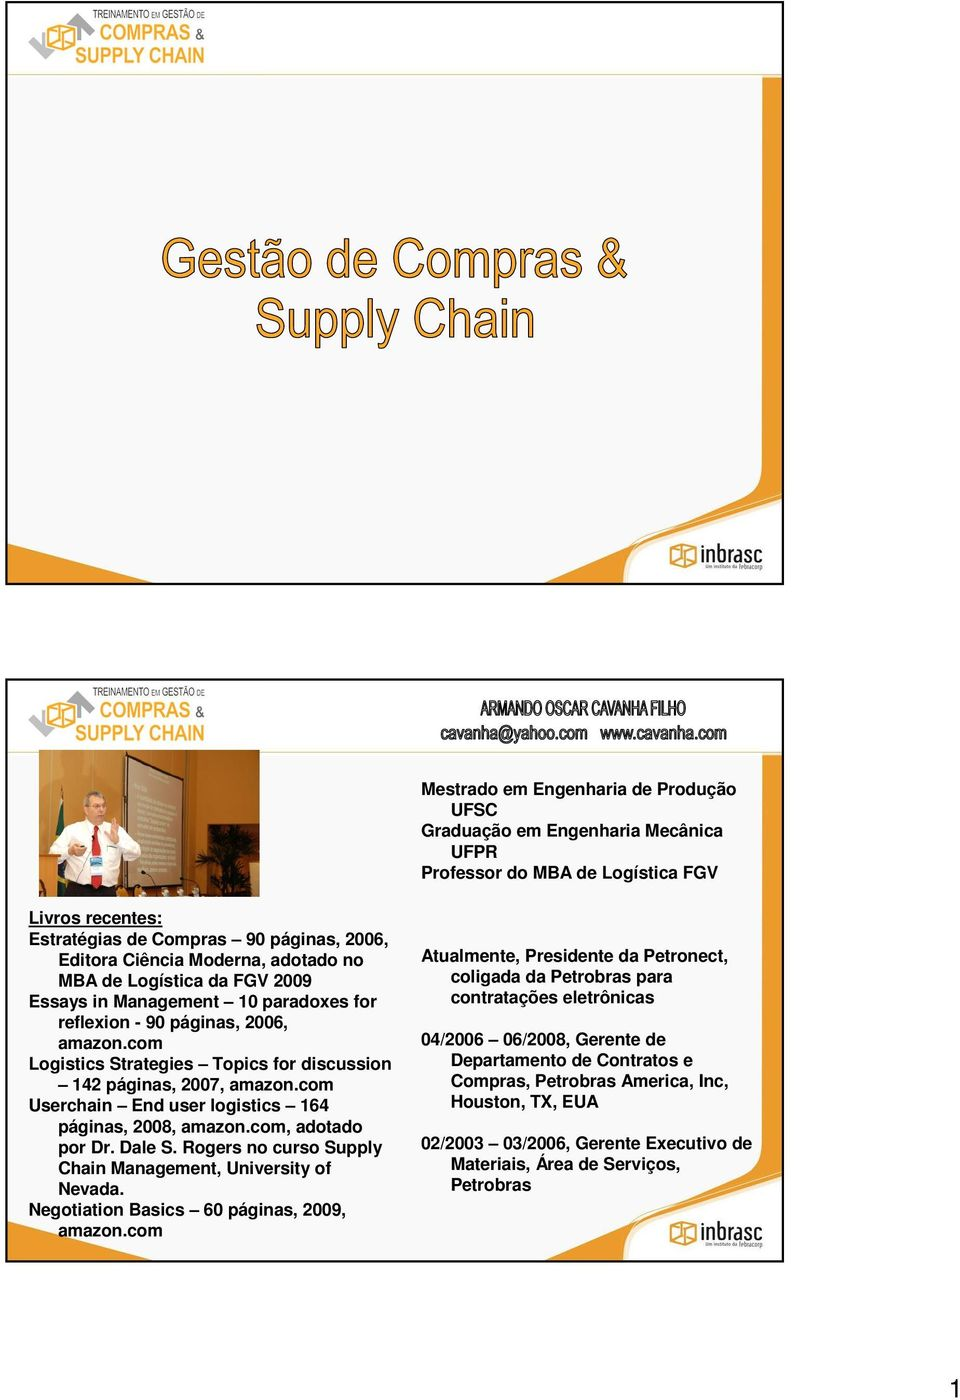 com Userchain End user logistics 164 páginas, 2008, amazon.com, adotado por Dr. Dale S. Rogers no curso Supply Chain Management, University of Nevada. Negotiation Basics 60 páginas, 2009, amazon.